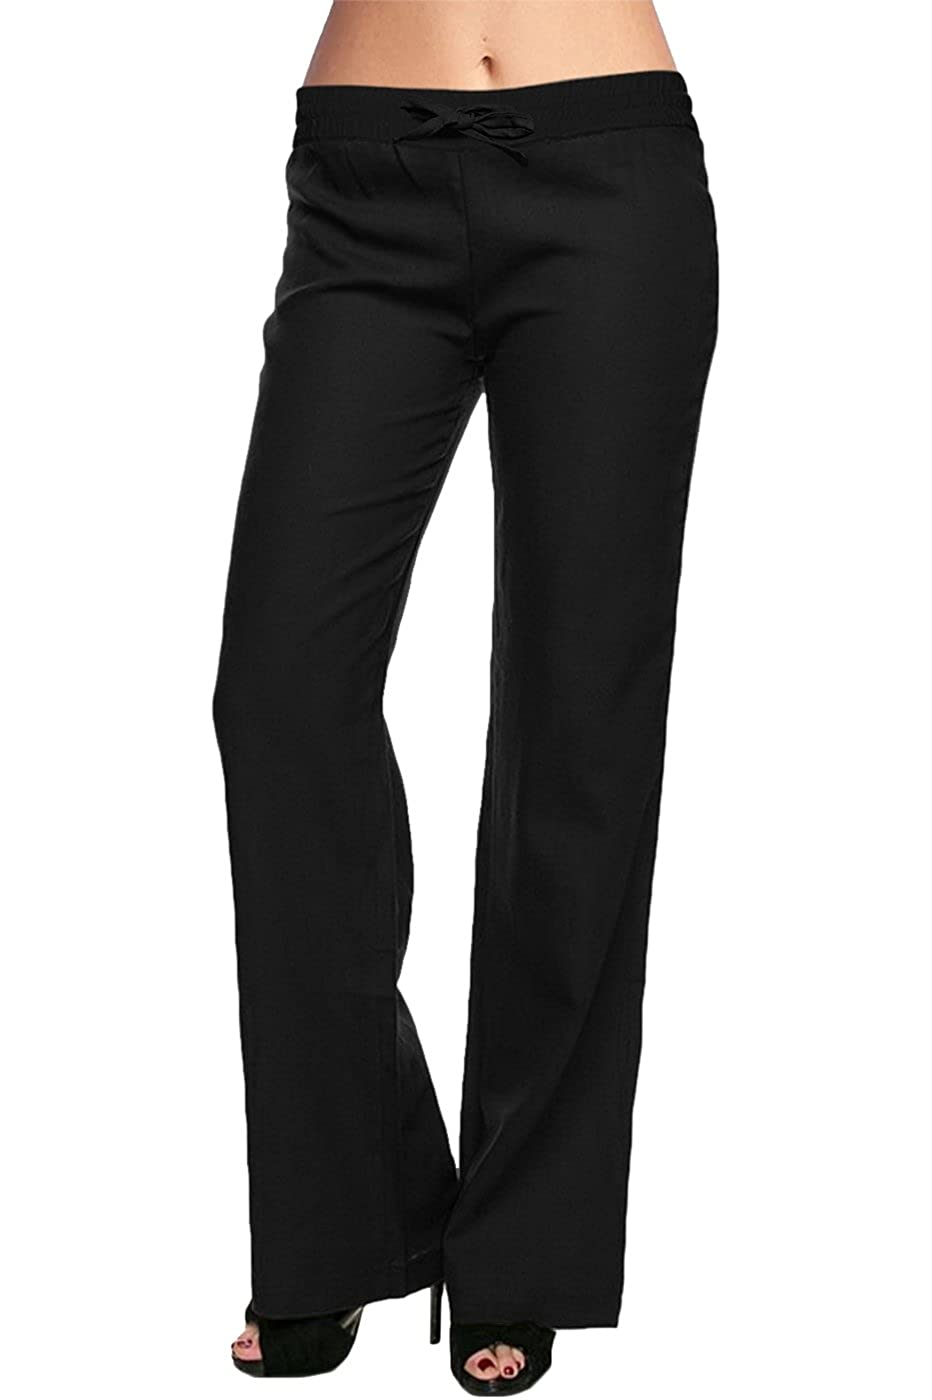 913f1b30b98 Top 10 wholesale Linen Pants With Pockets - Chinabrands.com